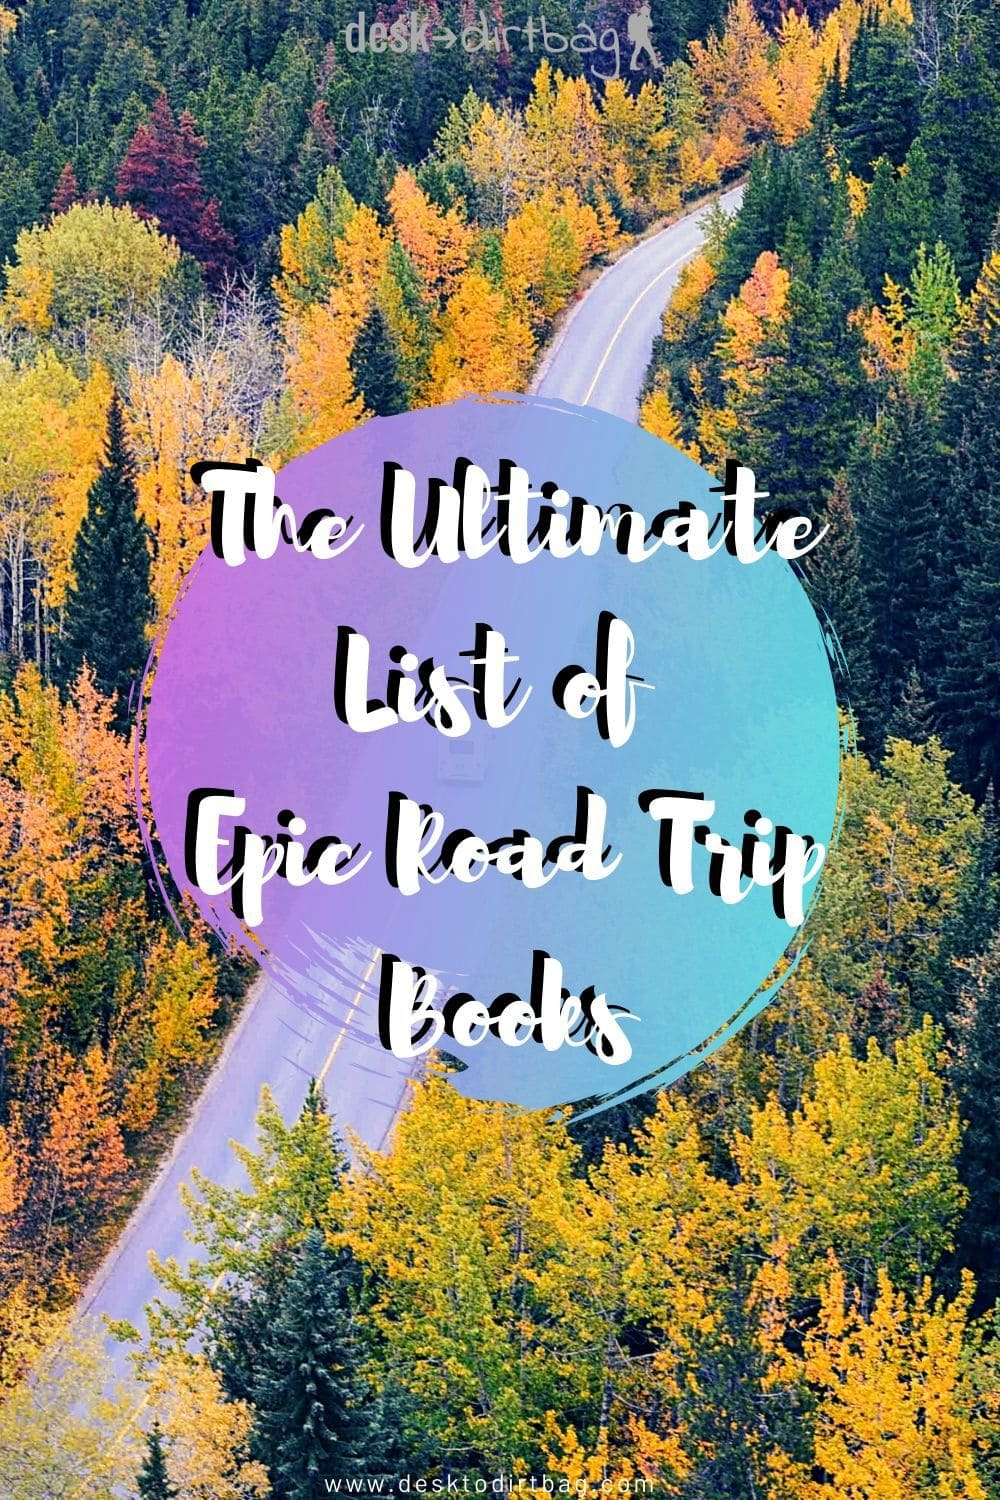 The Ultimate List of Epic Road Trip Books road-trip, featured